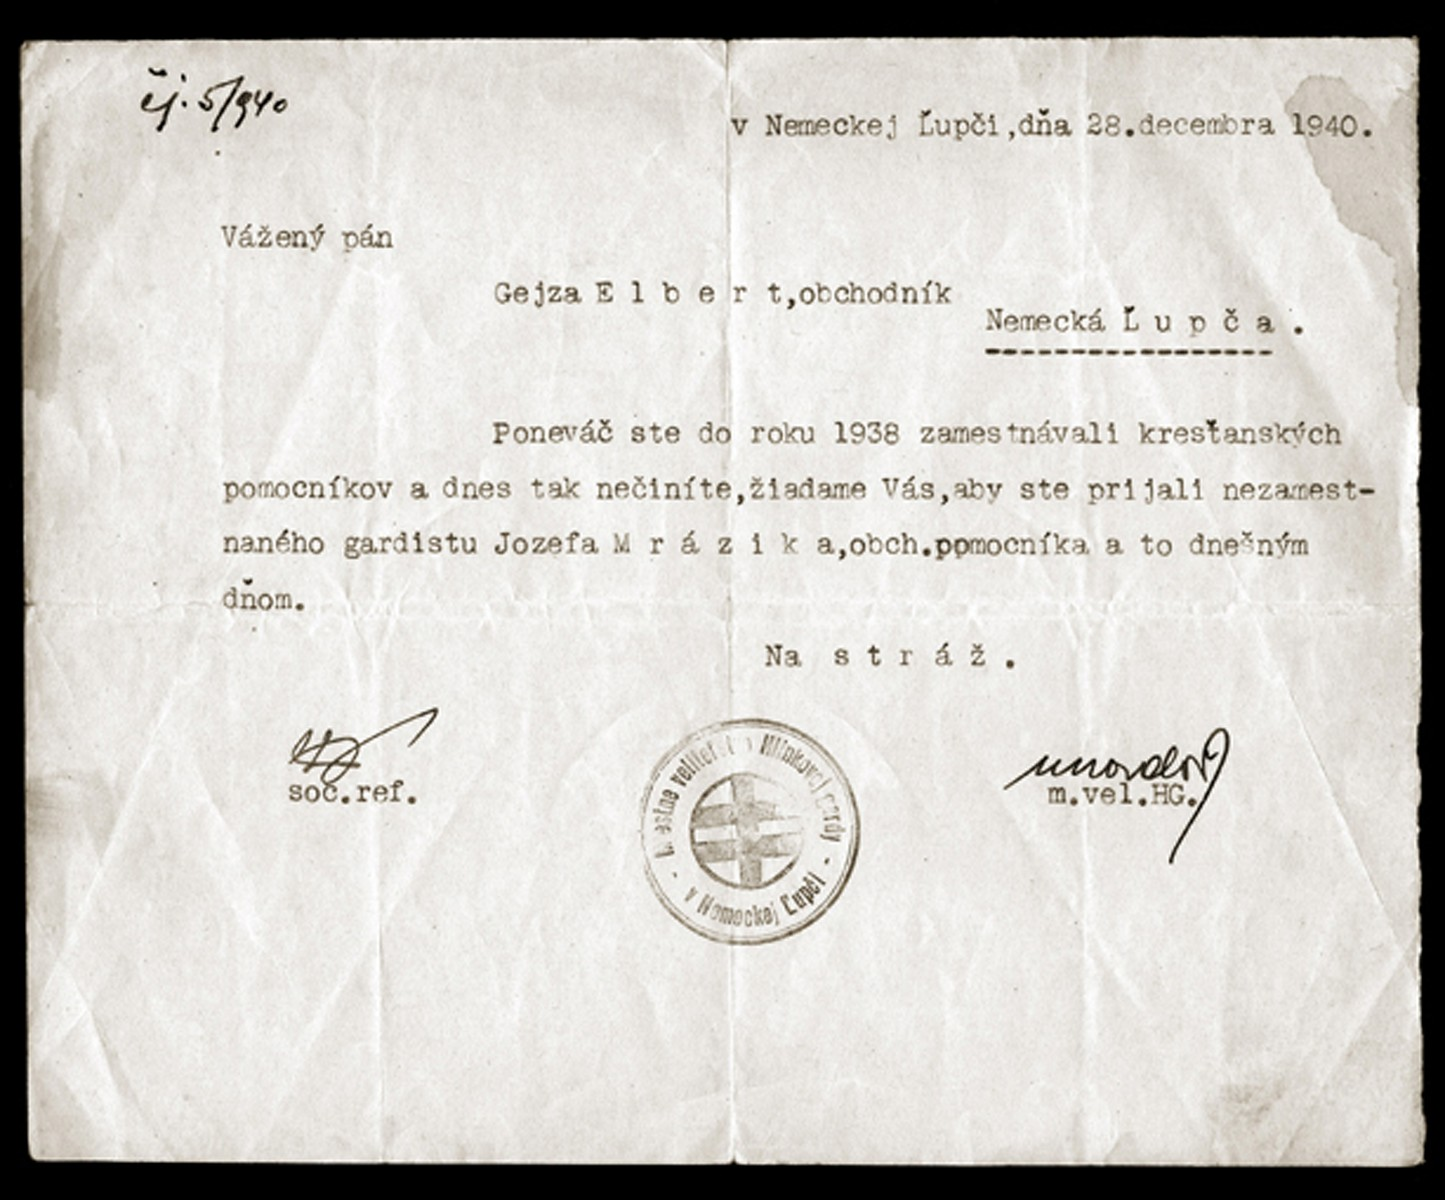 A document ordering the Jewish proprietor, Gejza Elbert, to immediately hire an unemployed member of the Hlinka Guard to work in his general store.